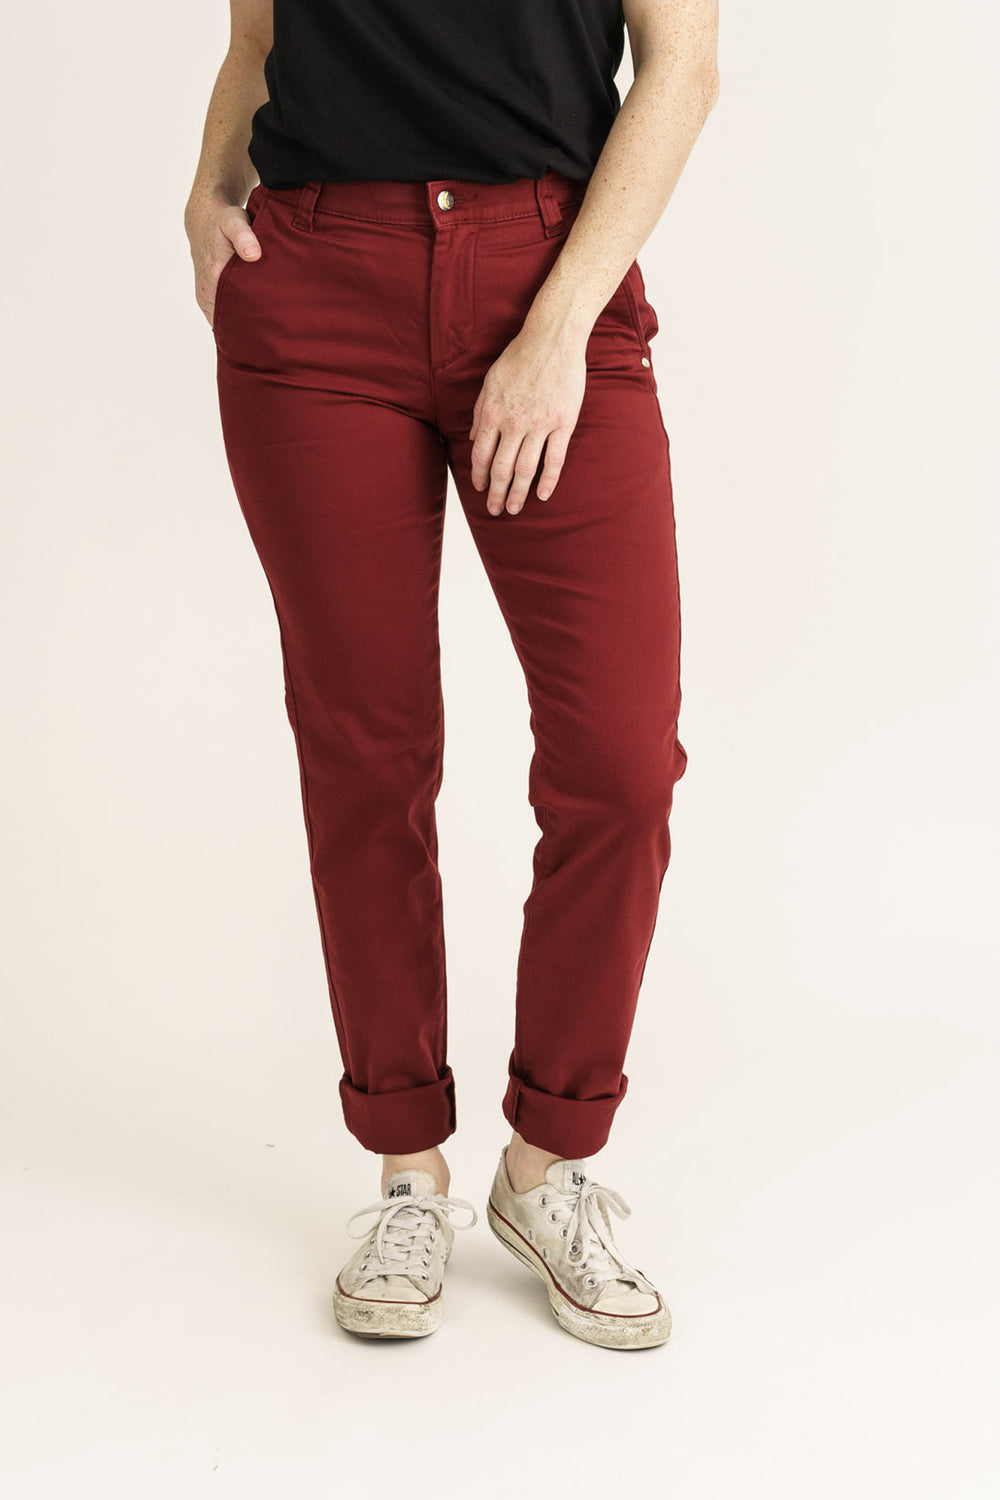 Women's Wine Tapered Fit Organic Sateen Chino - Monkee Genes Organic Jeans